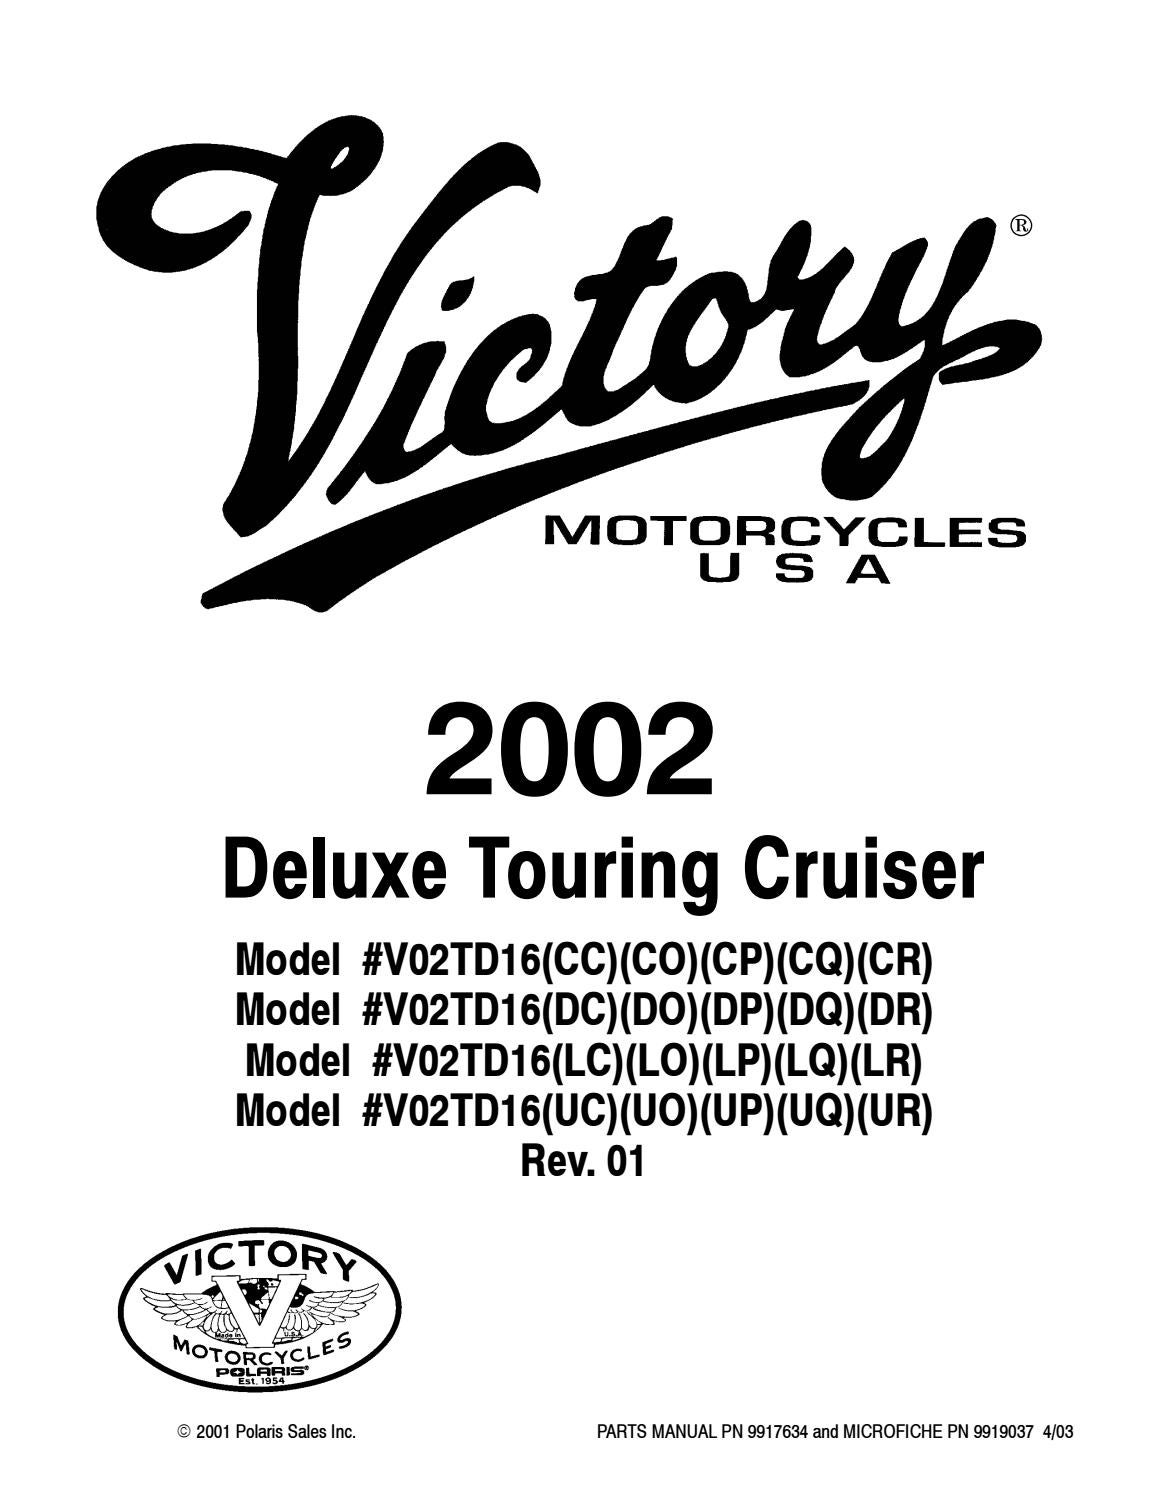 2002 Victory Deluxe Touring Cruiser Motorcycle Parts Manual By Heydownloads Issuu